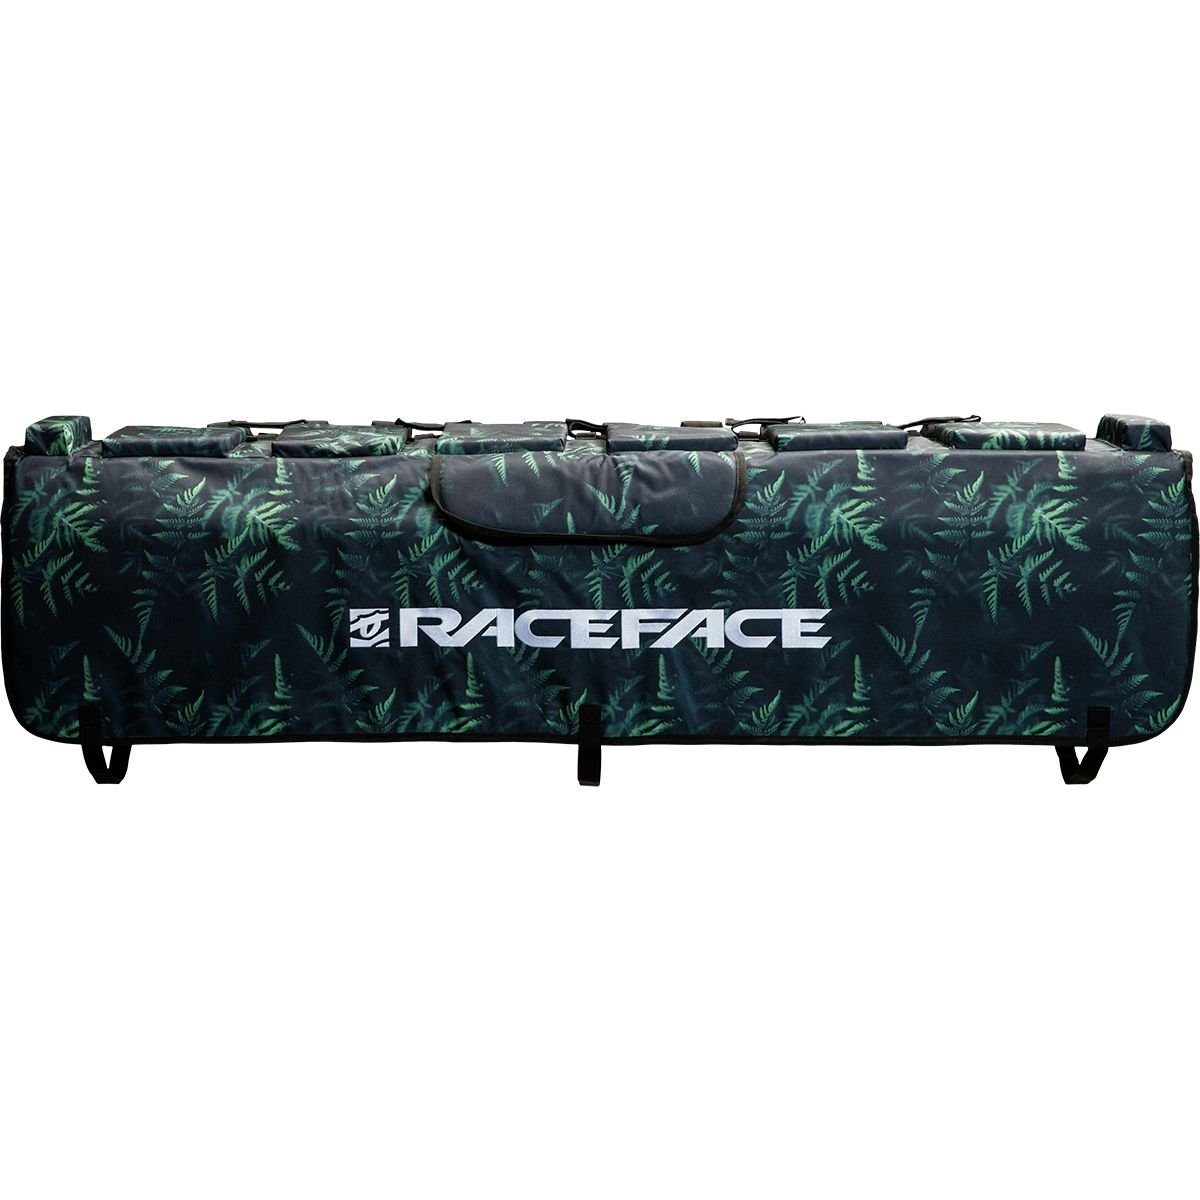 Race Face Tailgate Pad in-Ferno, L/XL by Race Face